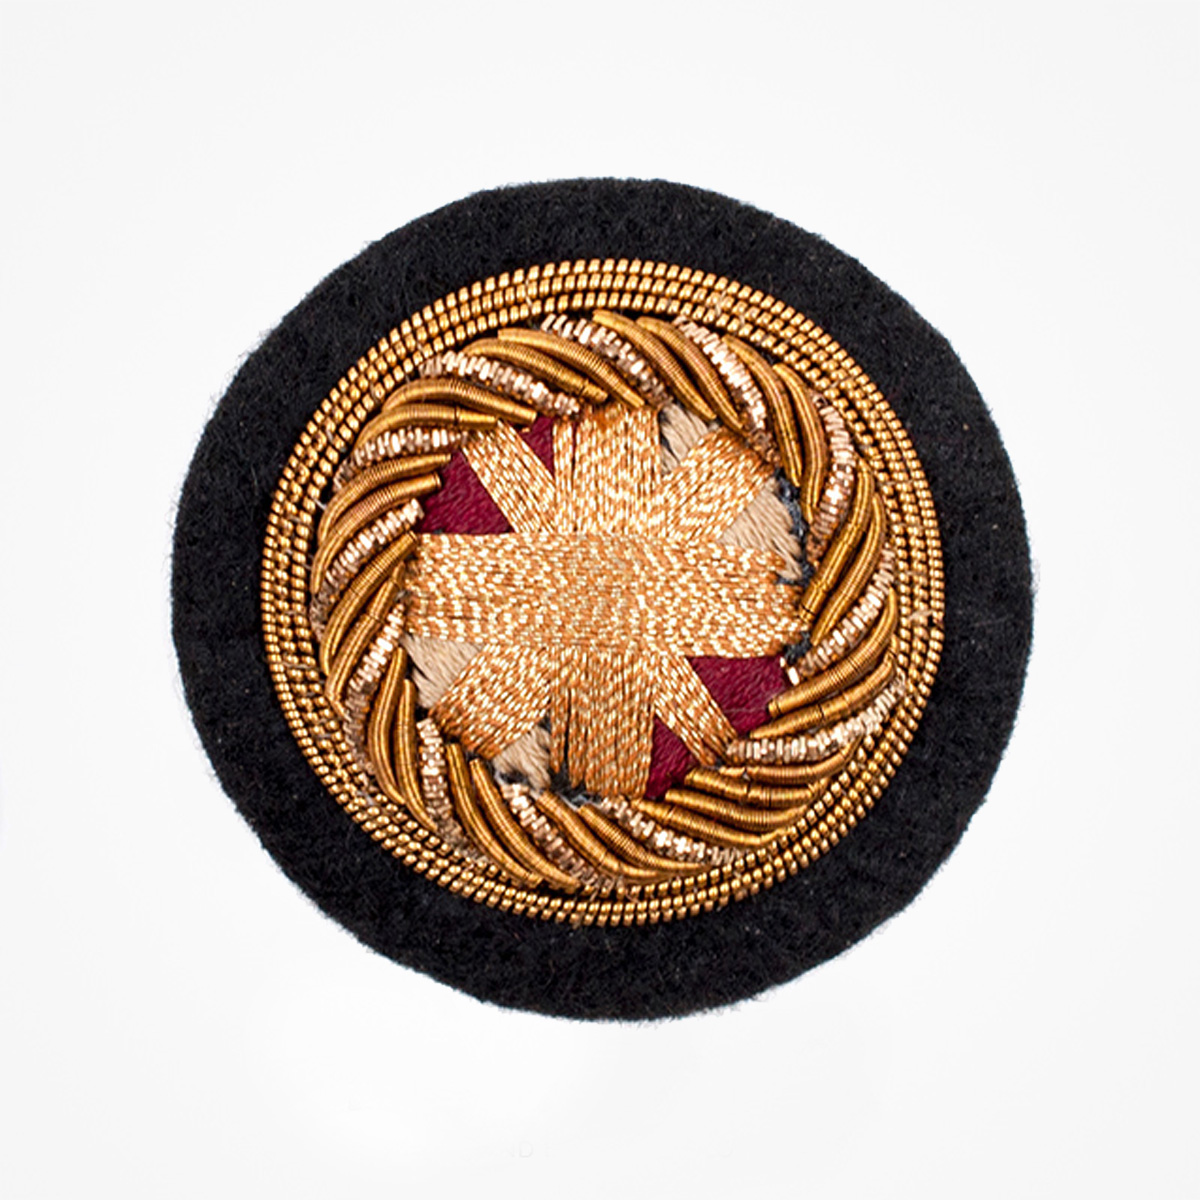 Qg - 3549 - Fashionable 3D embroidered look Made by skilled artisans Bullion wire and silk thread hand Stitched on Black color Felt Available in gold and silver colors Size = 40 mm height 40 mm width sewon backing: Perfect for caps, sports jacket, leather jackets, blazer coat, Blazer Pocket, shirts uniforms, Accessories and many More Pin backing: easy to removable 5